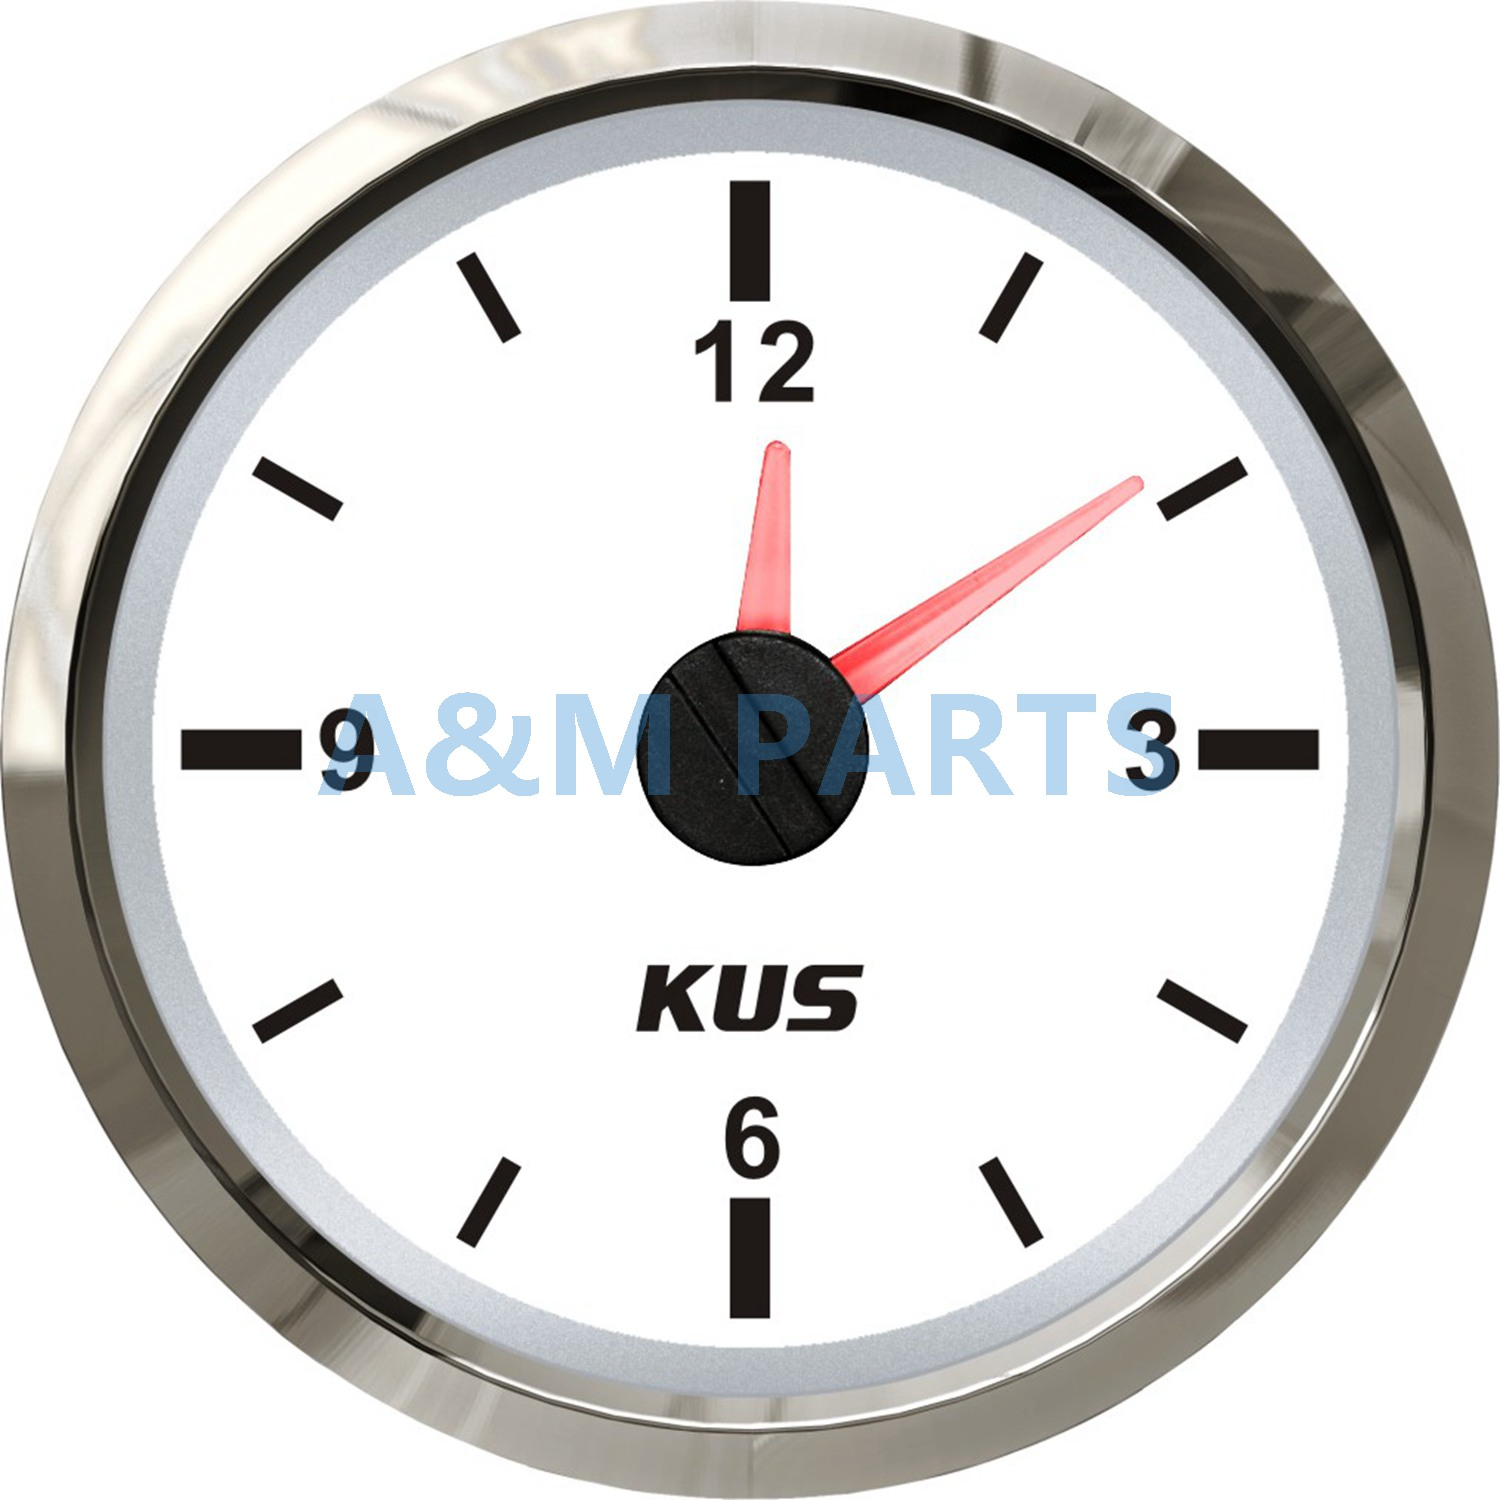 KUS Marine Quartz Clock Boat Car RV Hour Gauge White Face Dial 12 Hour 12V/24V датчик kus 12v 24v